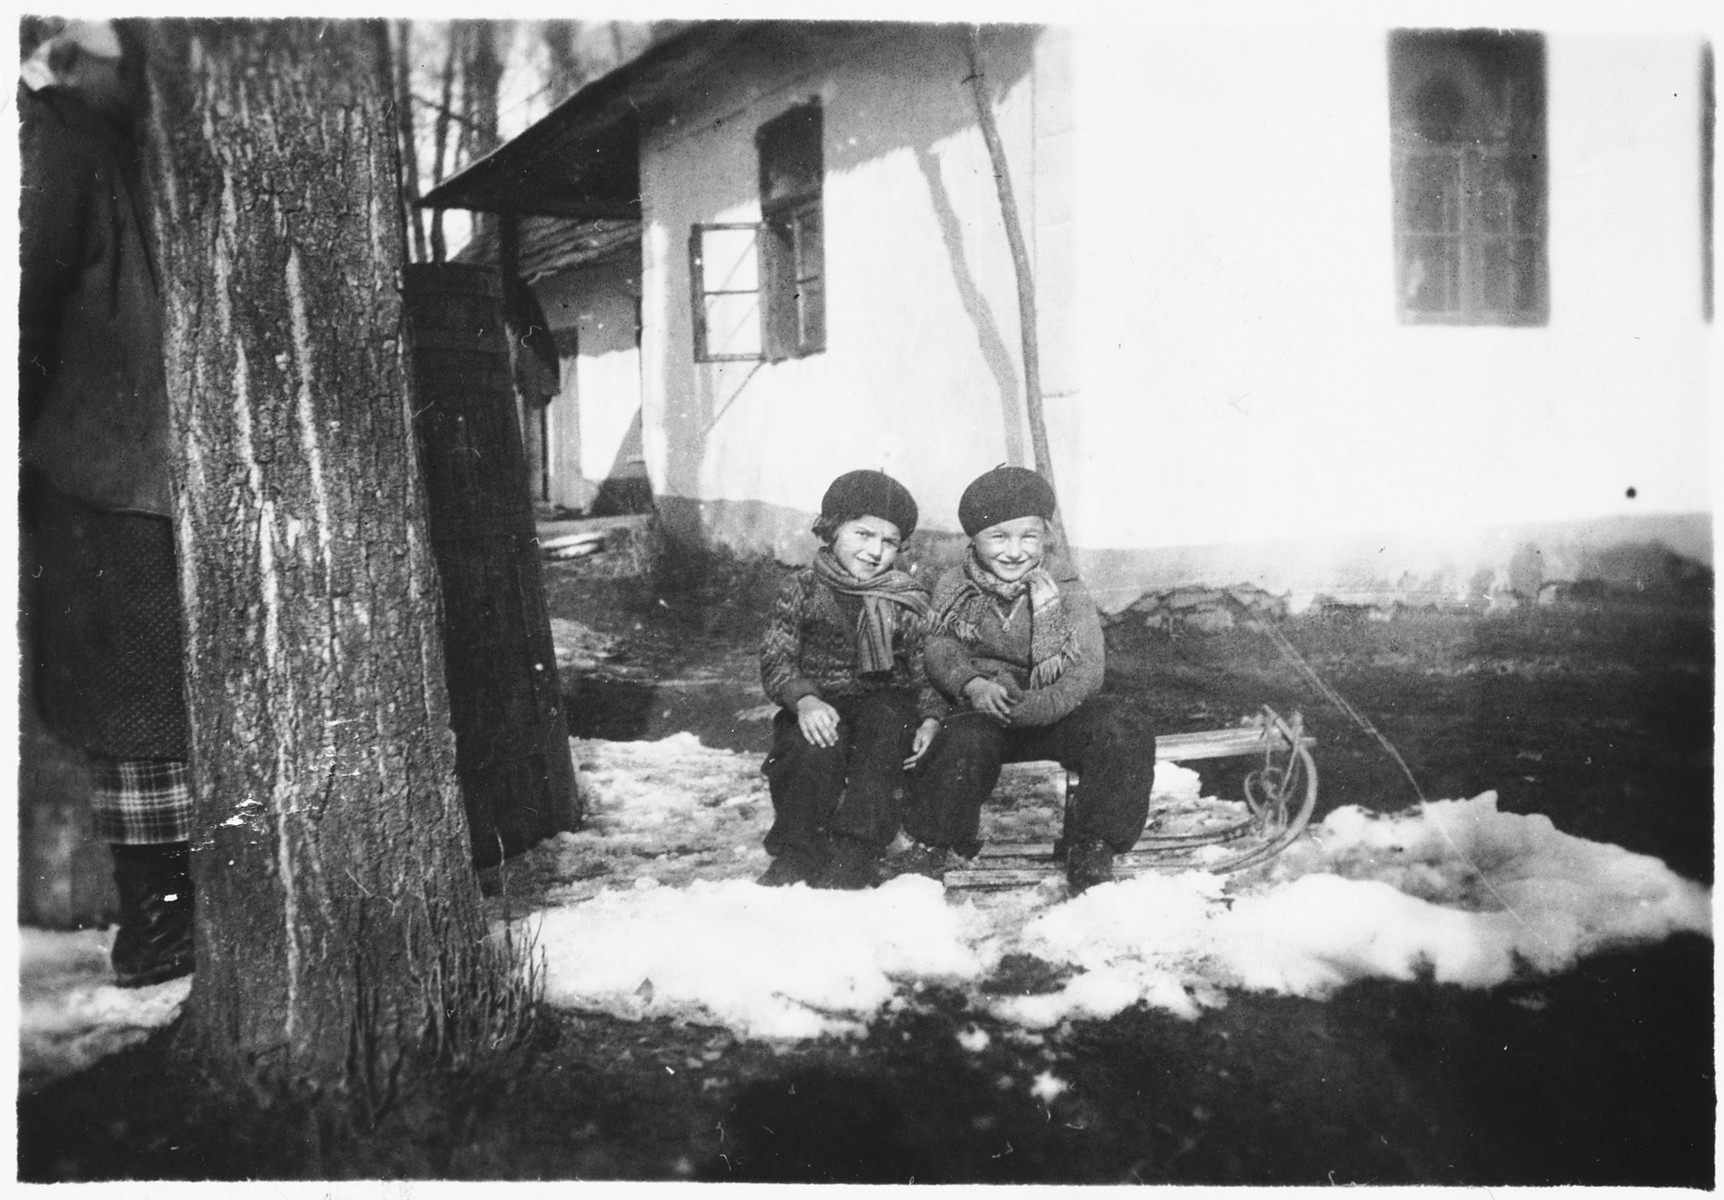 Two young Jewish children sit outside in the snow in front of their house in Bilki.  Pictured are Violet and Hana Mermelstein.